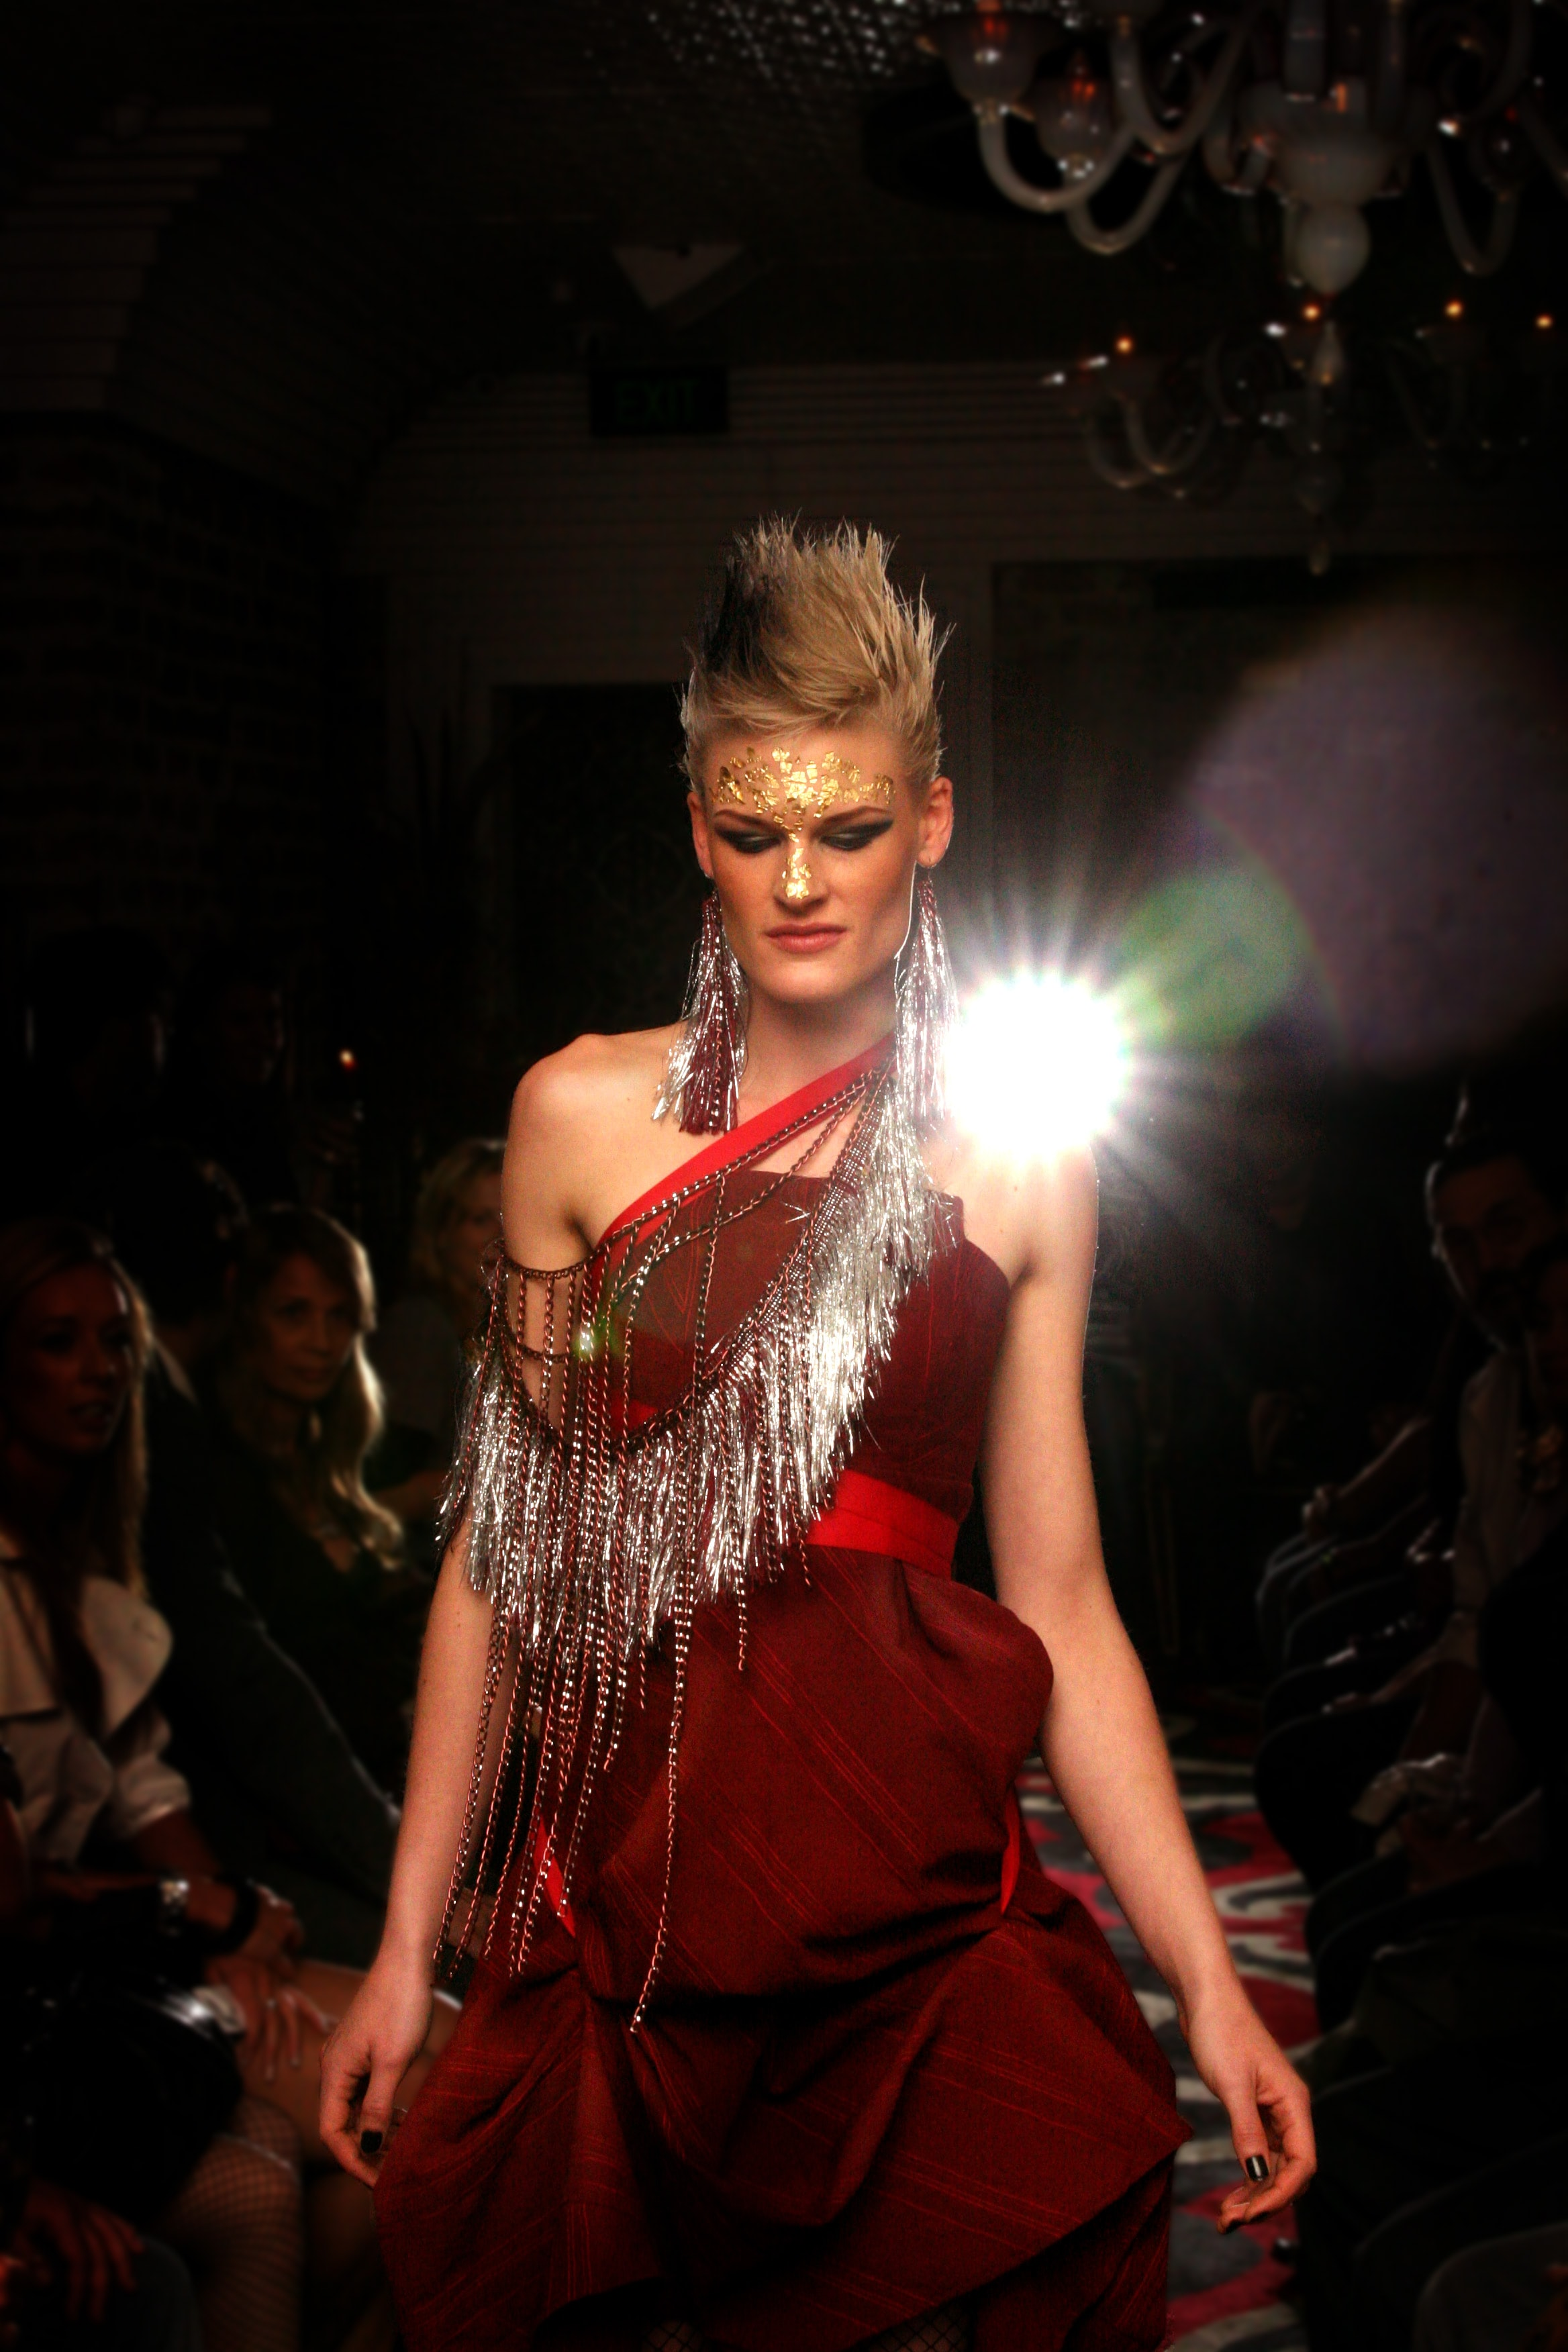 High fashion model in avant garde makeup and clothing walking the runway